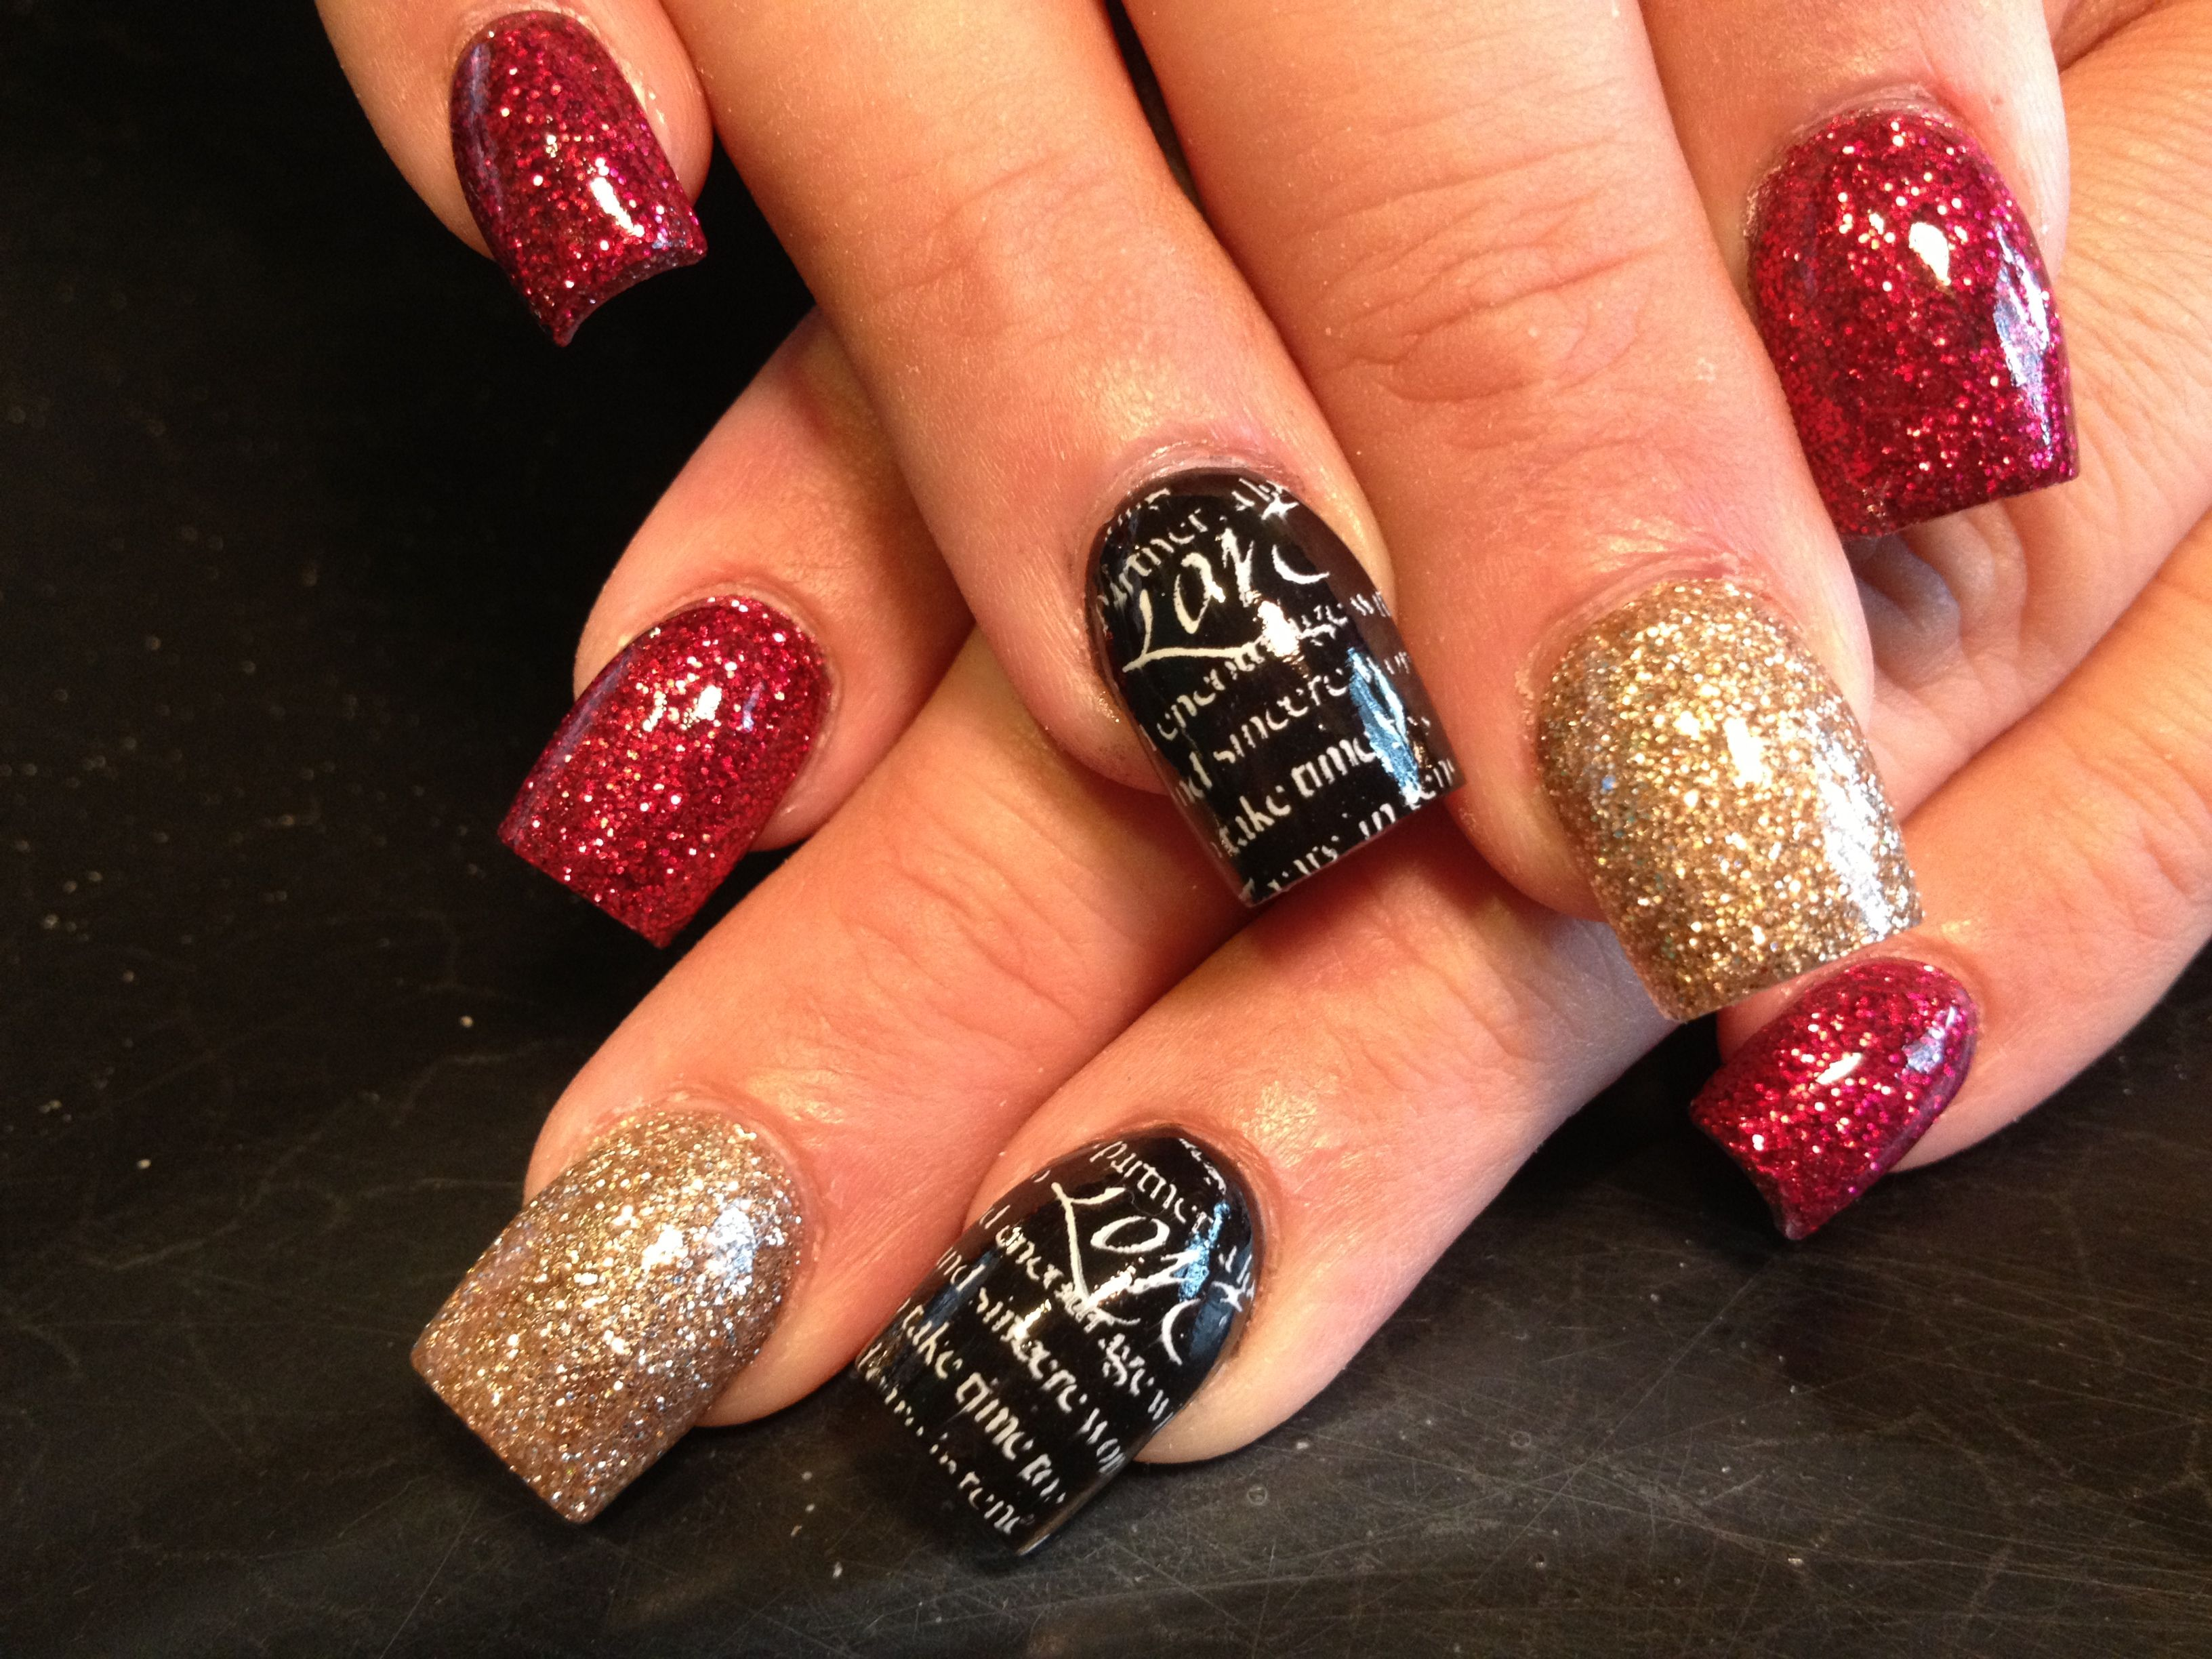 Love acrylic nails by Celeste Young | Nails by Celeste Young ...